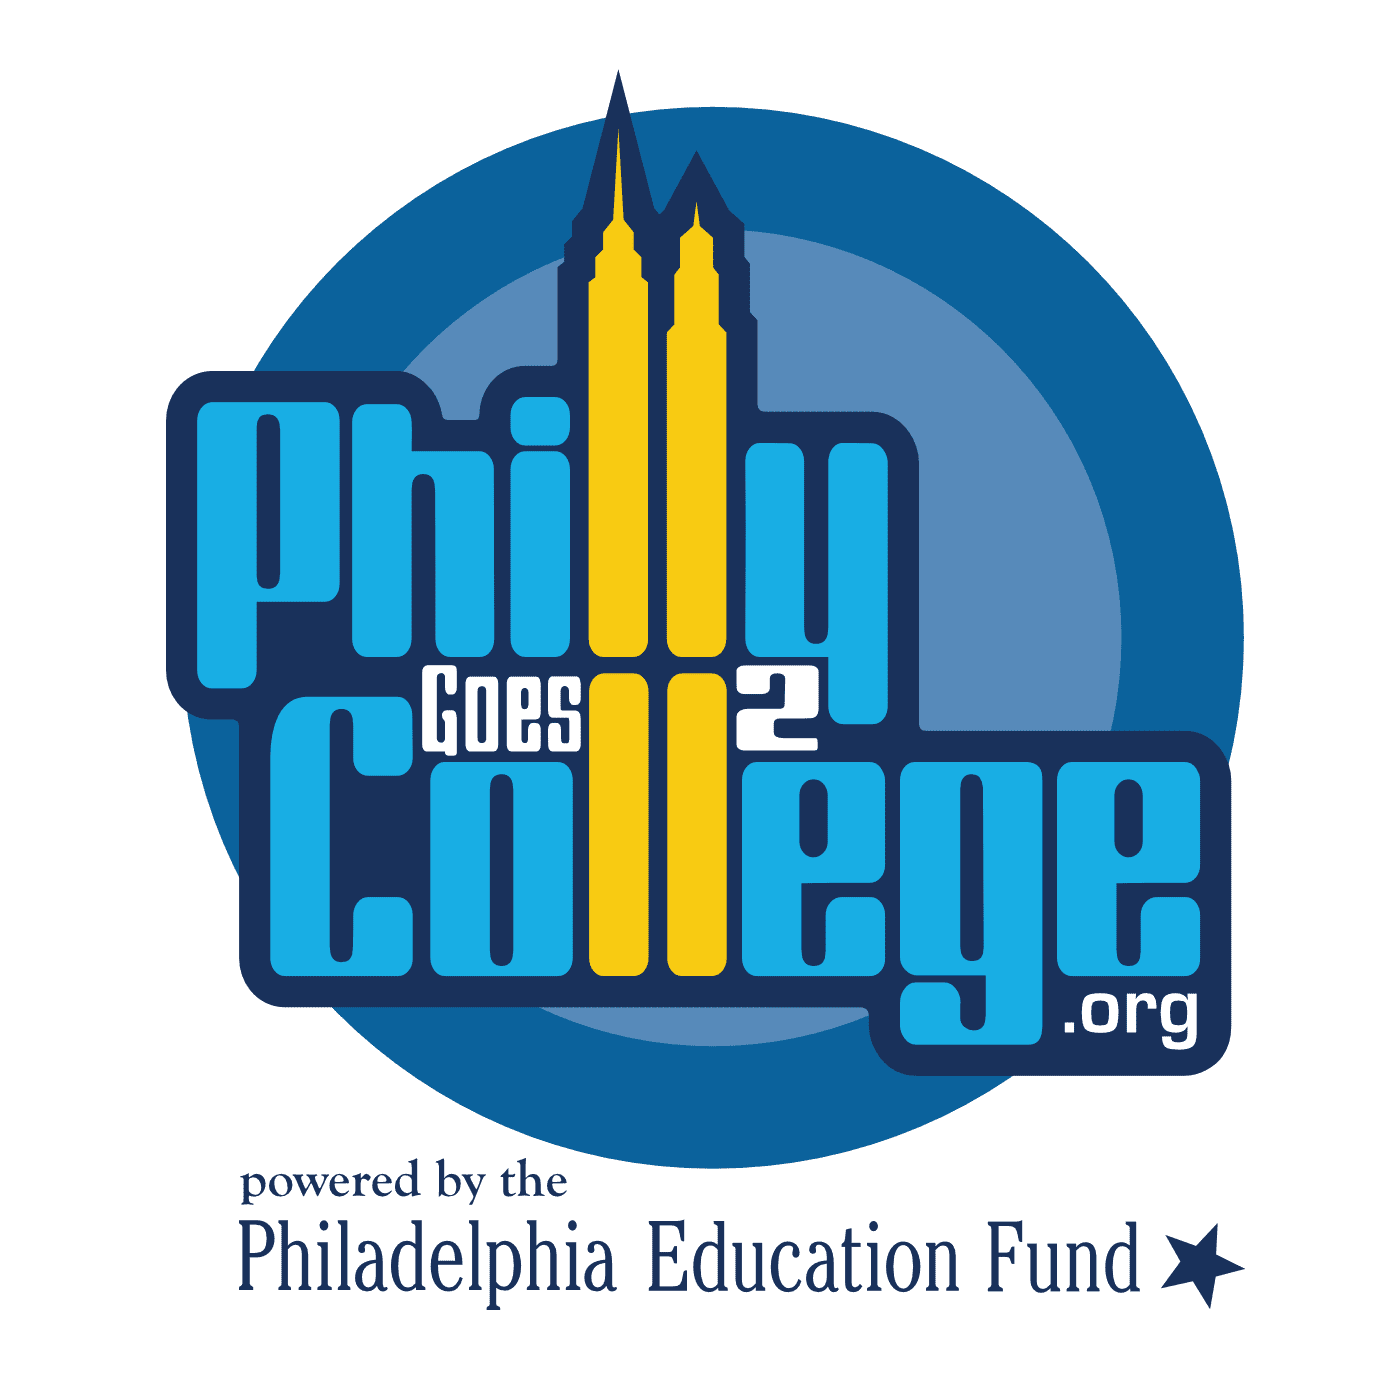 The Philadelphia Education Fund